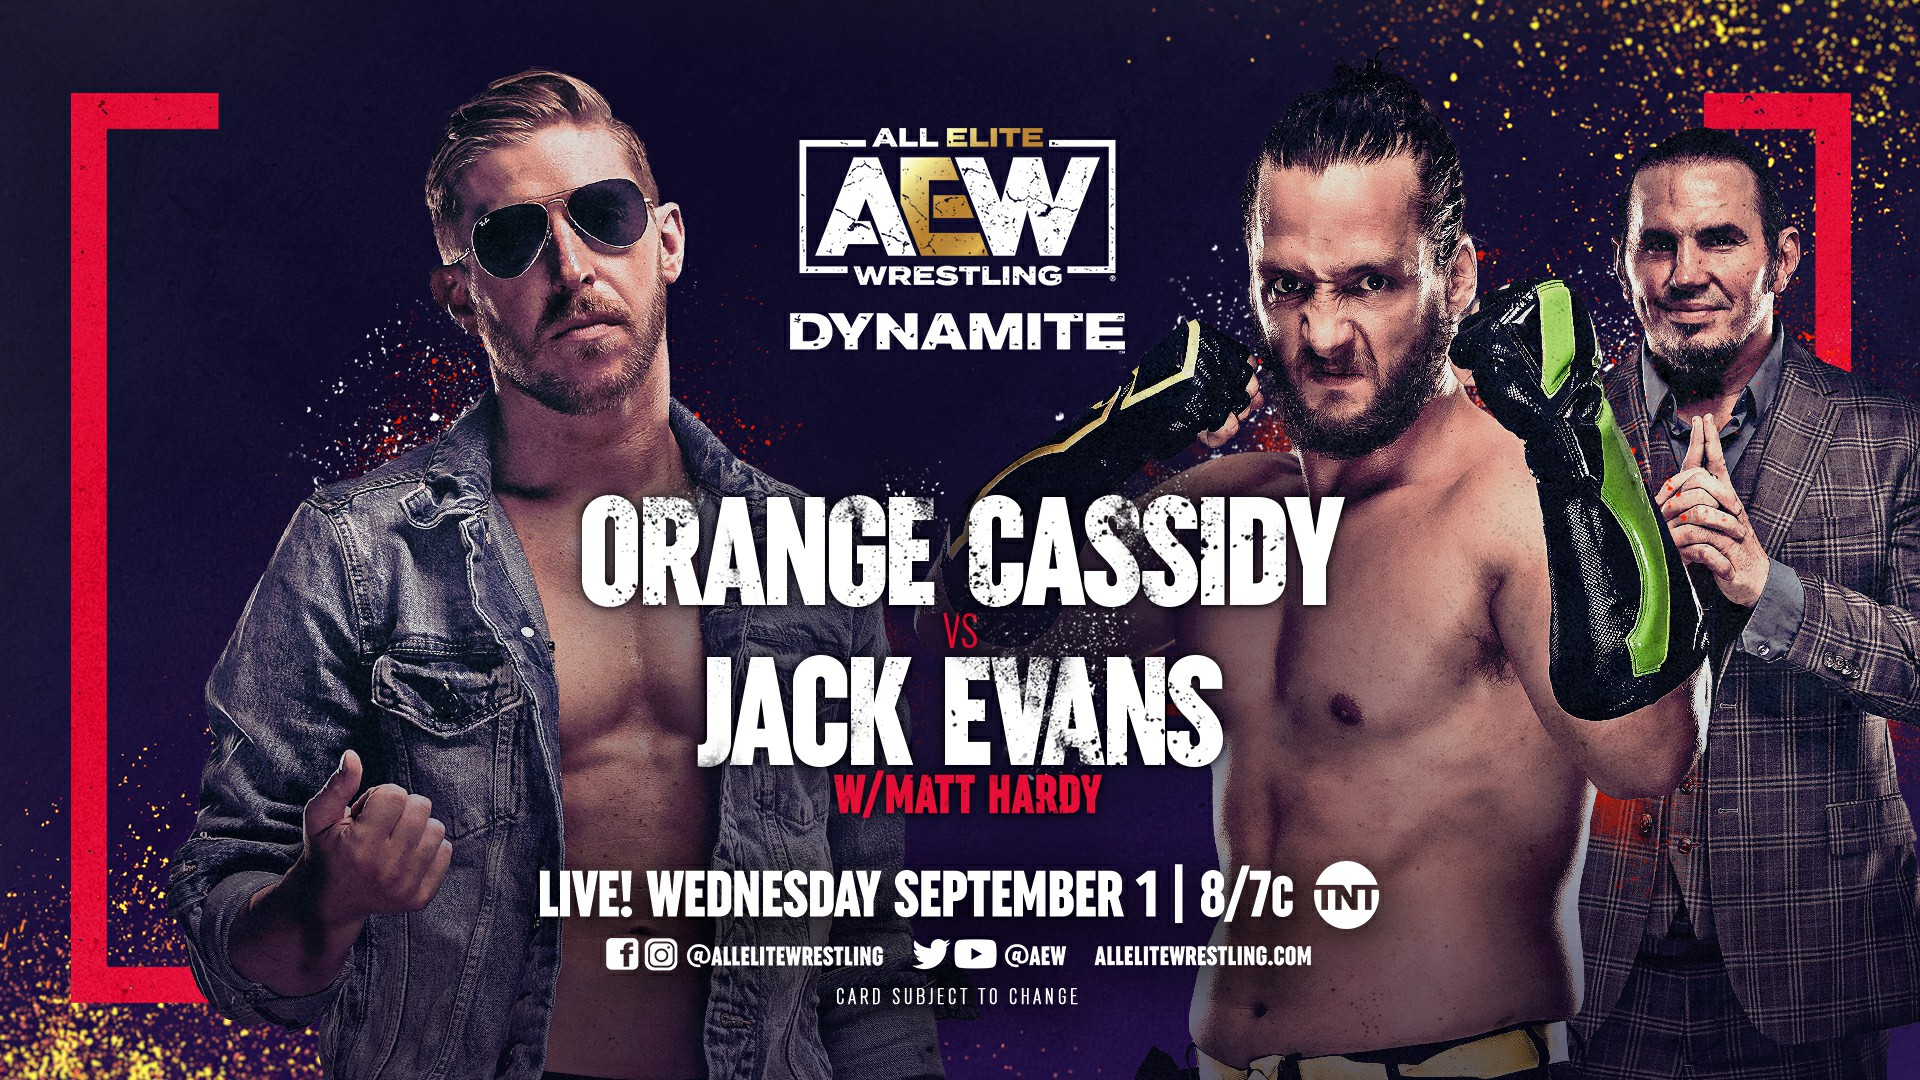 """All Elite Wrestling on Twitter: """"After defeating @MATTHARDYBRAND last week, @orangecassidy faces @JackEvans711 of the #HFO with Big Money Matt in his corner THIS WEDNESDAY (9/1) on the 100th episode of #AEWDynamite"""